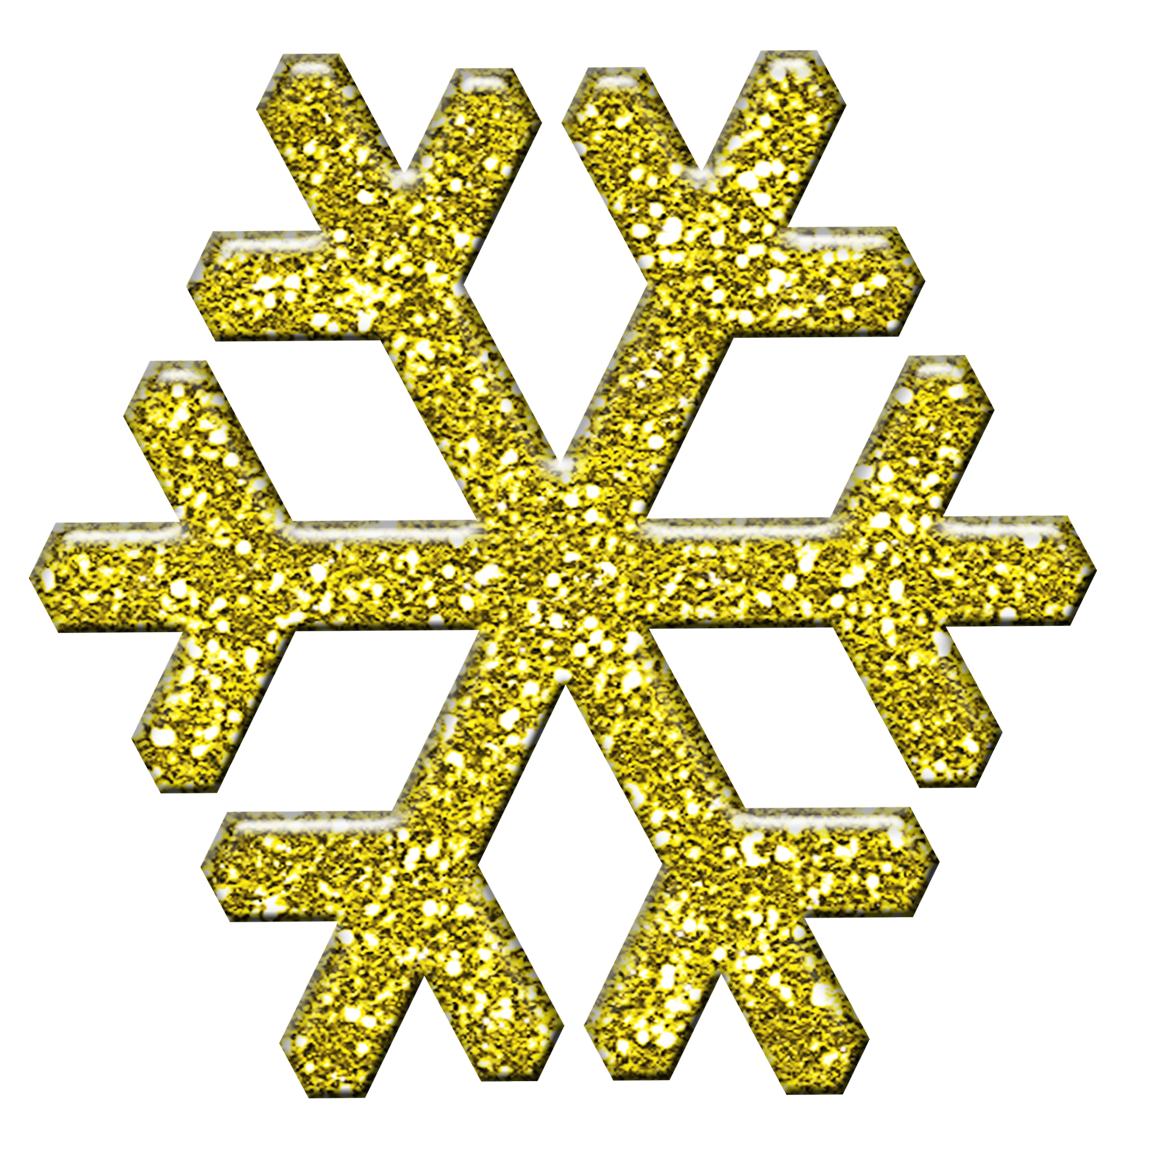 Gold snowflake clipart images vector black and white Free Christmas Scrapbooking Goodies: Christmas Snowflake Scrapbook Image vector black and white